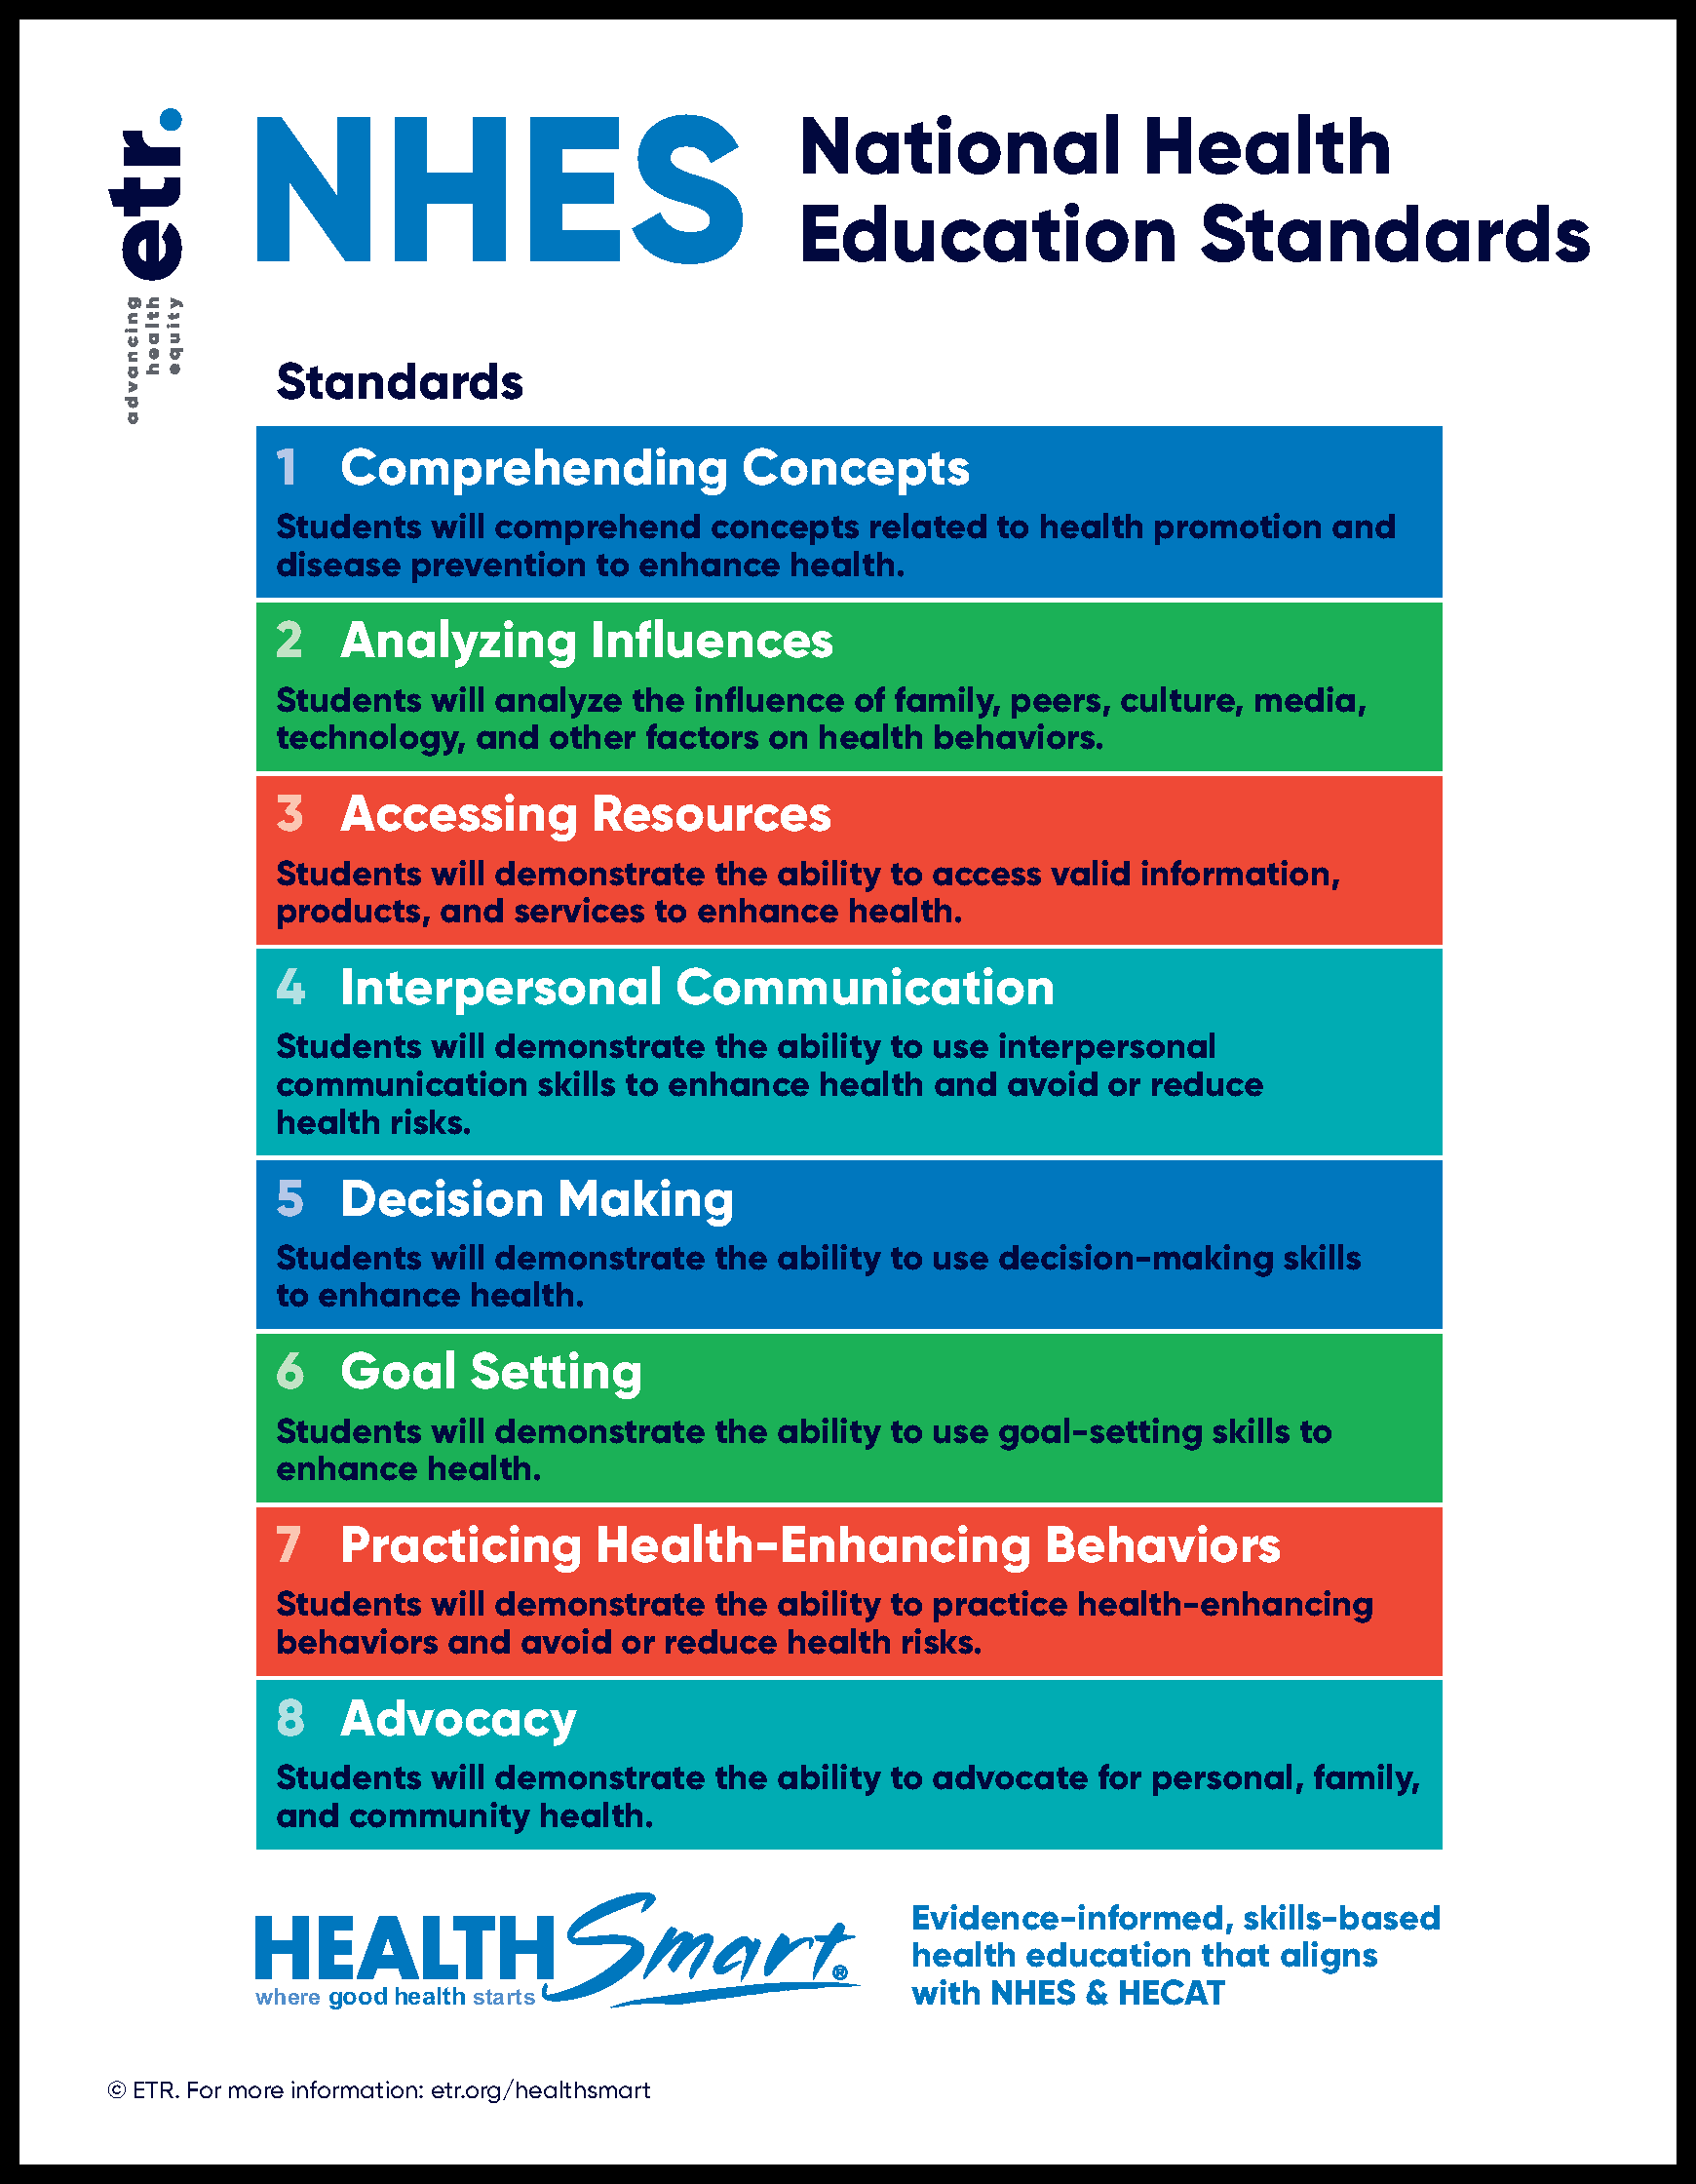 National Health Education Standards white poster